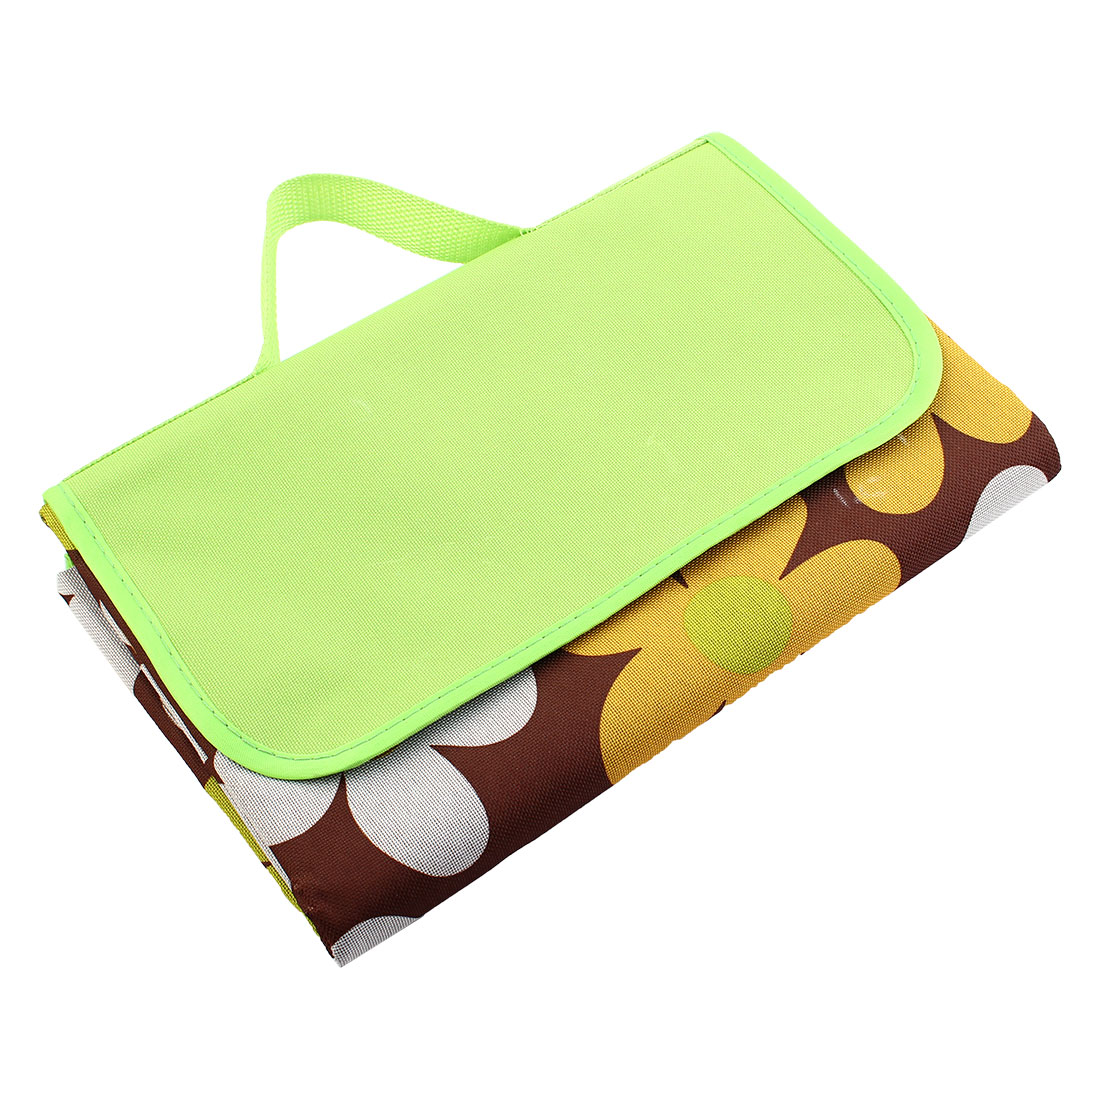 Beach Floral Print Water Resistant Pad Foldable Picnic Blanket Portable Camping Mat